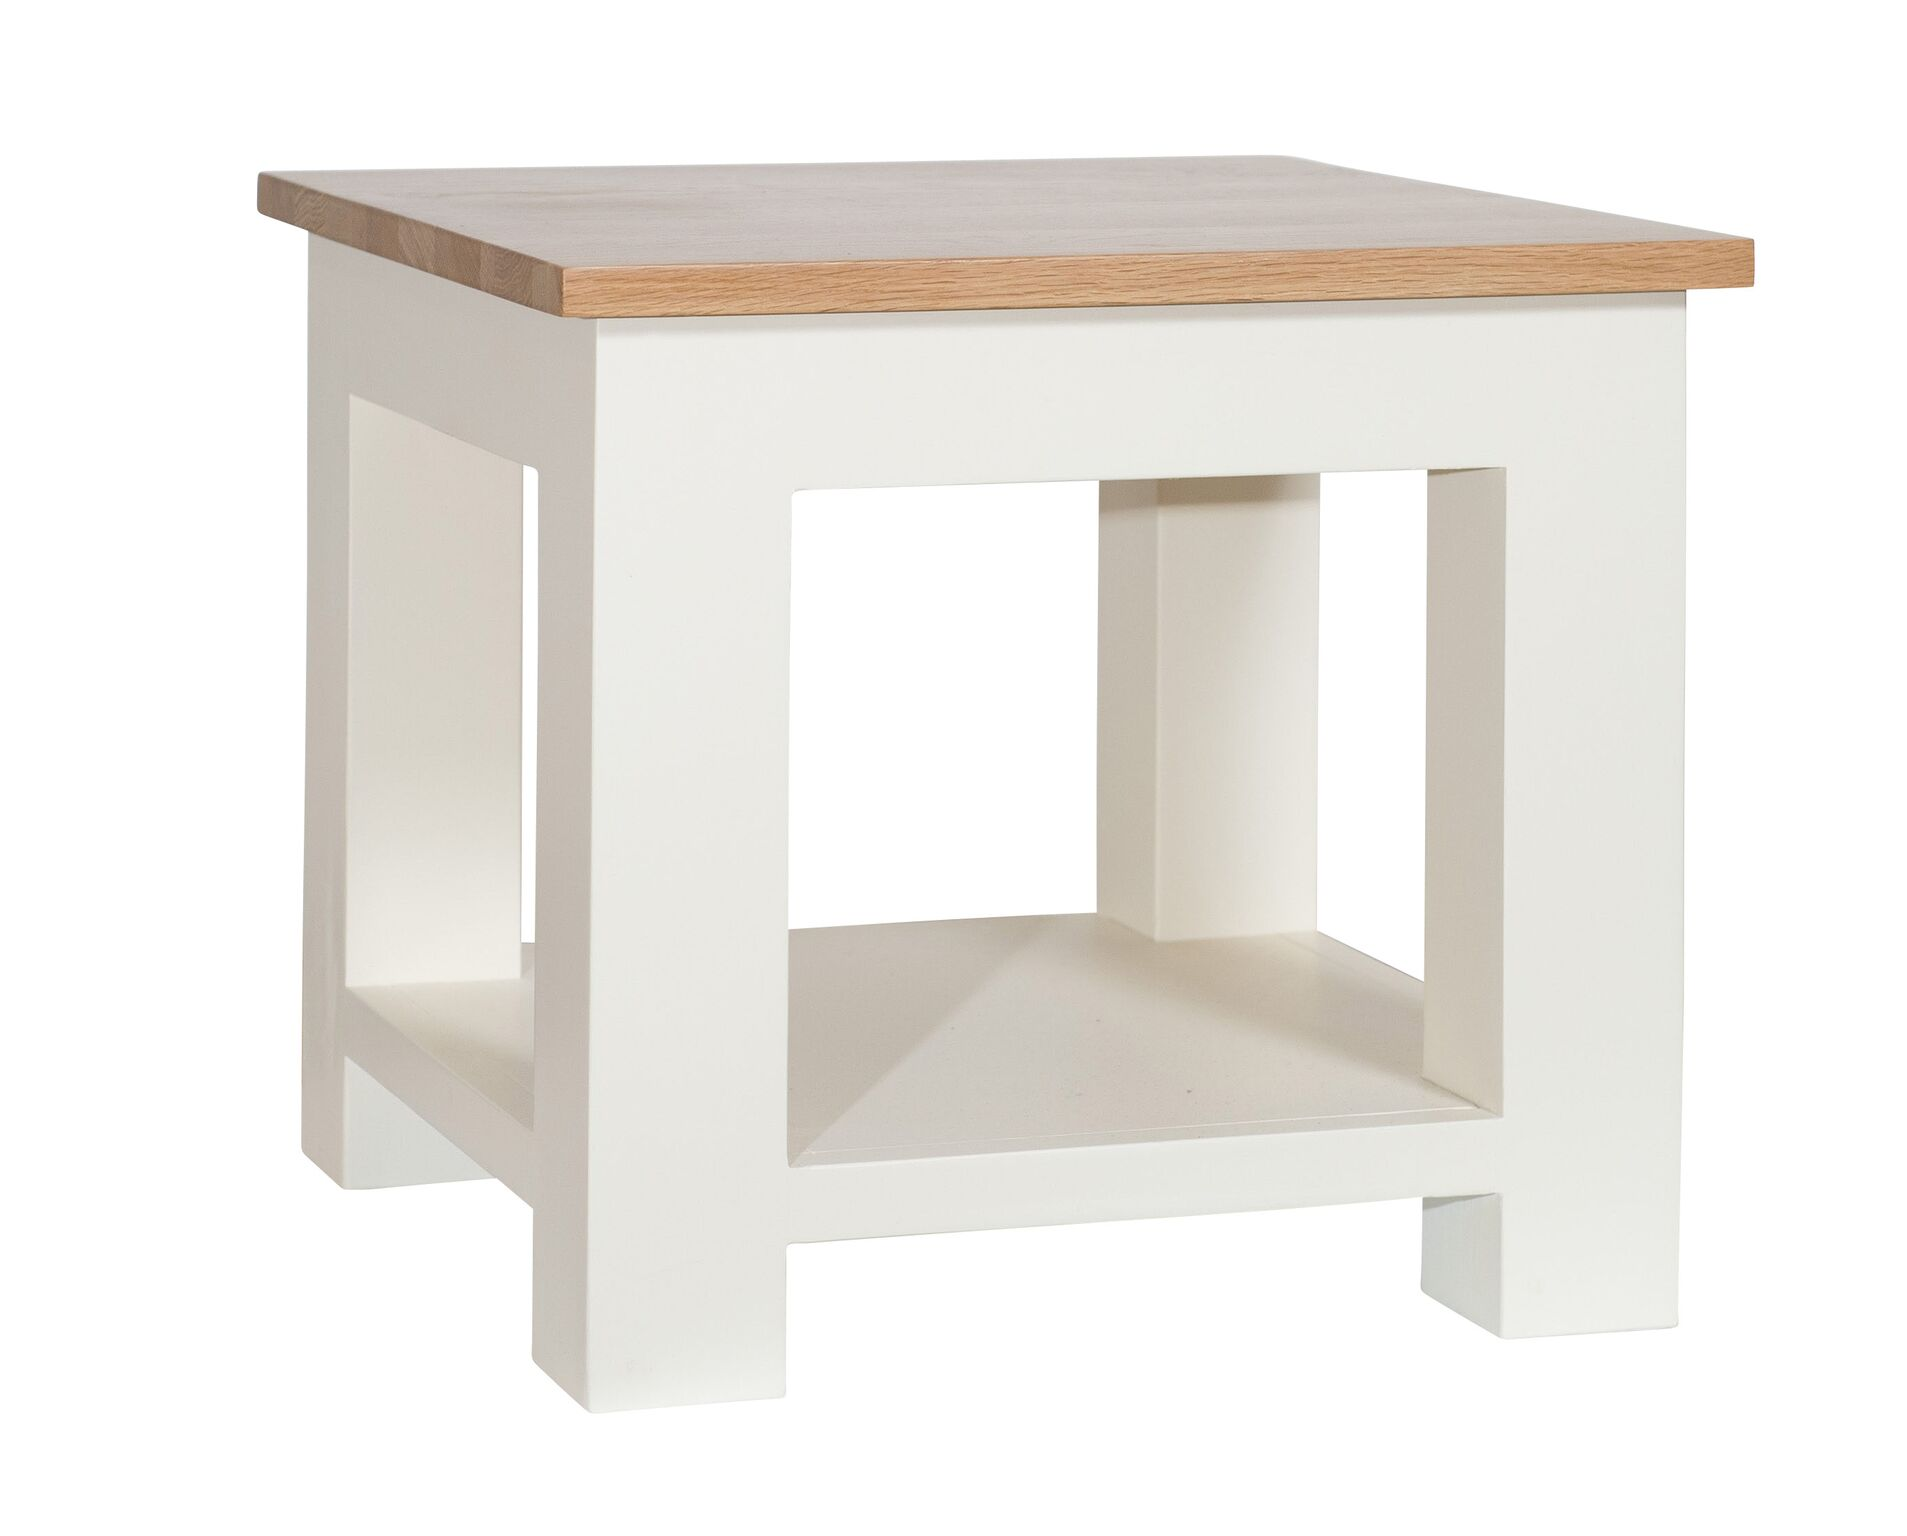 Cream Painted Oak Top Lamp Table With Shelf